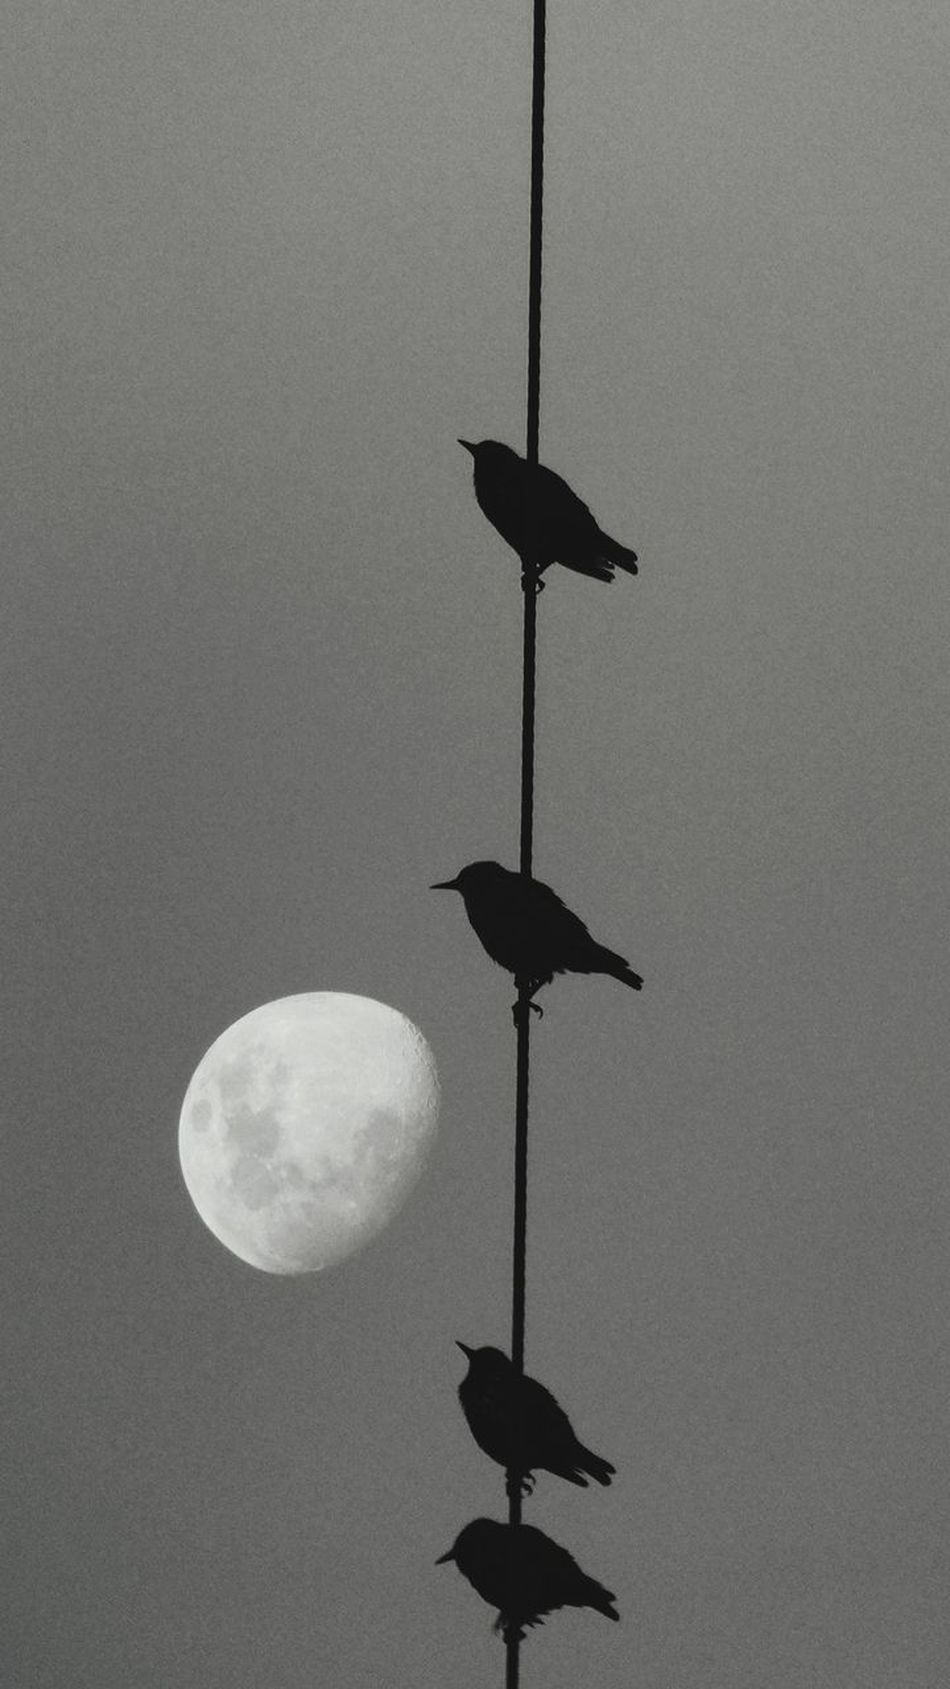 Lunar Creativity Lunar Photography Moon Moon Hanging Low Angle View No People Outdoors Bird Nature Sky Astronomy Silhouette Abstraction In Black And White